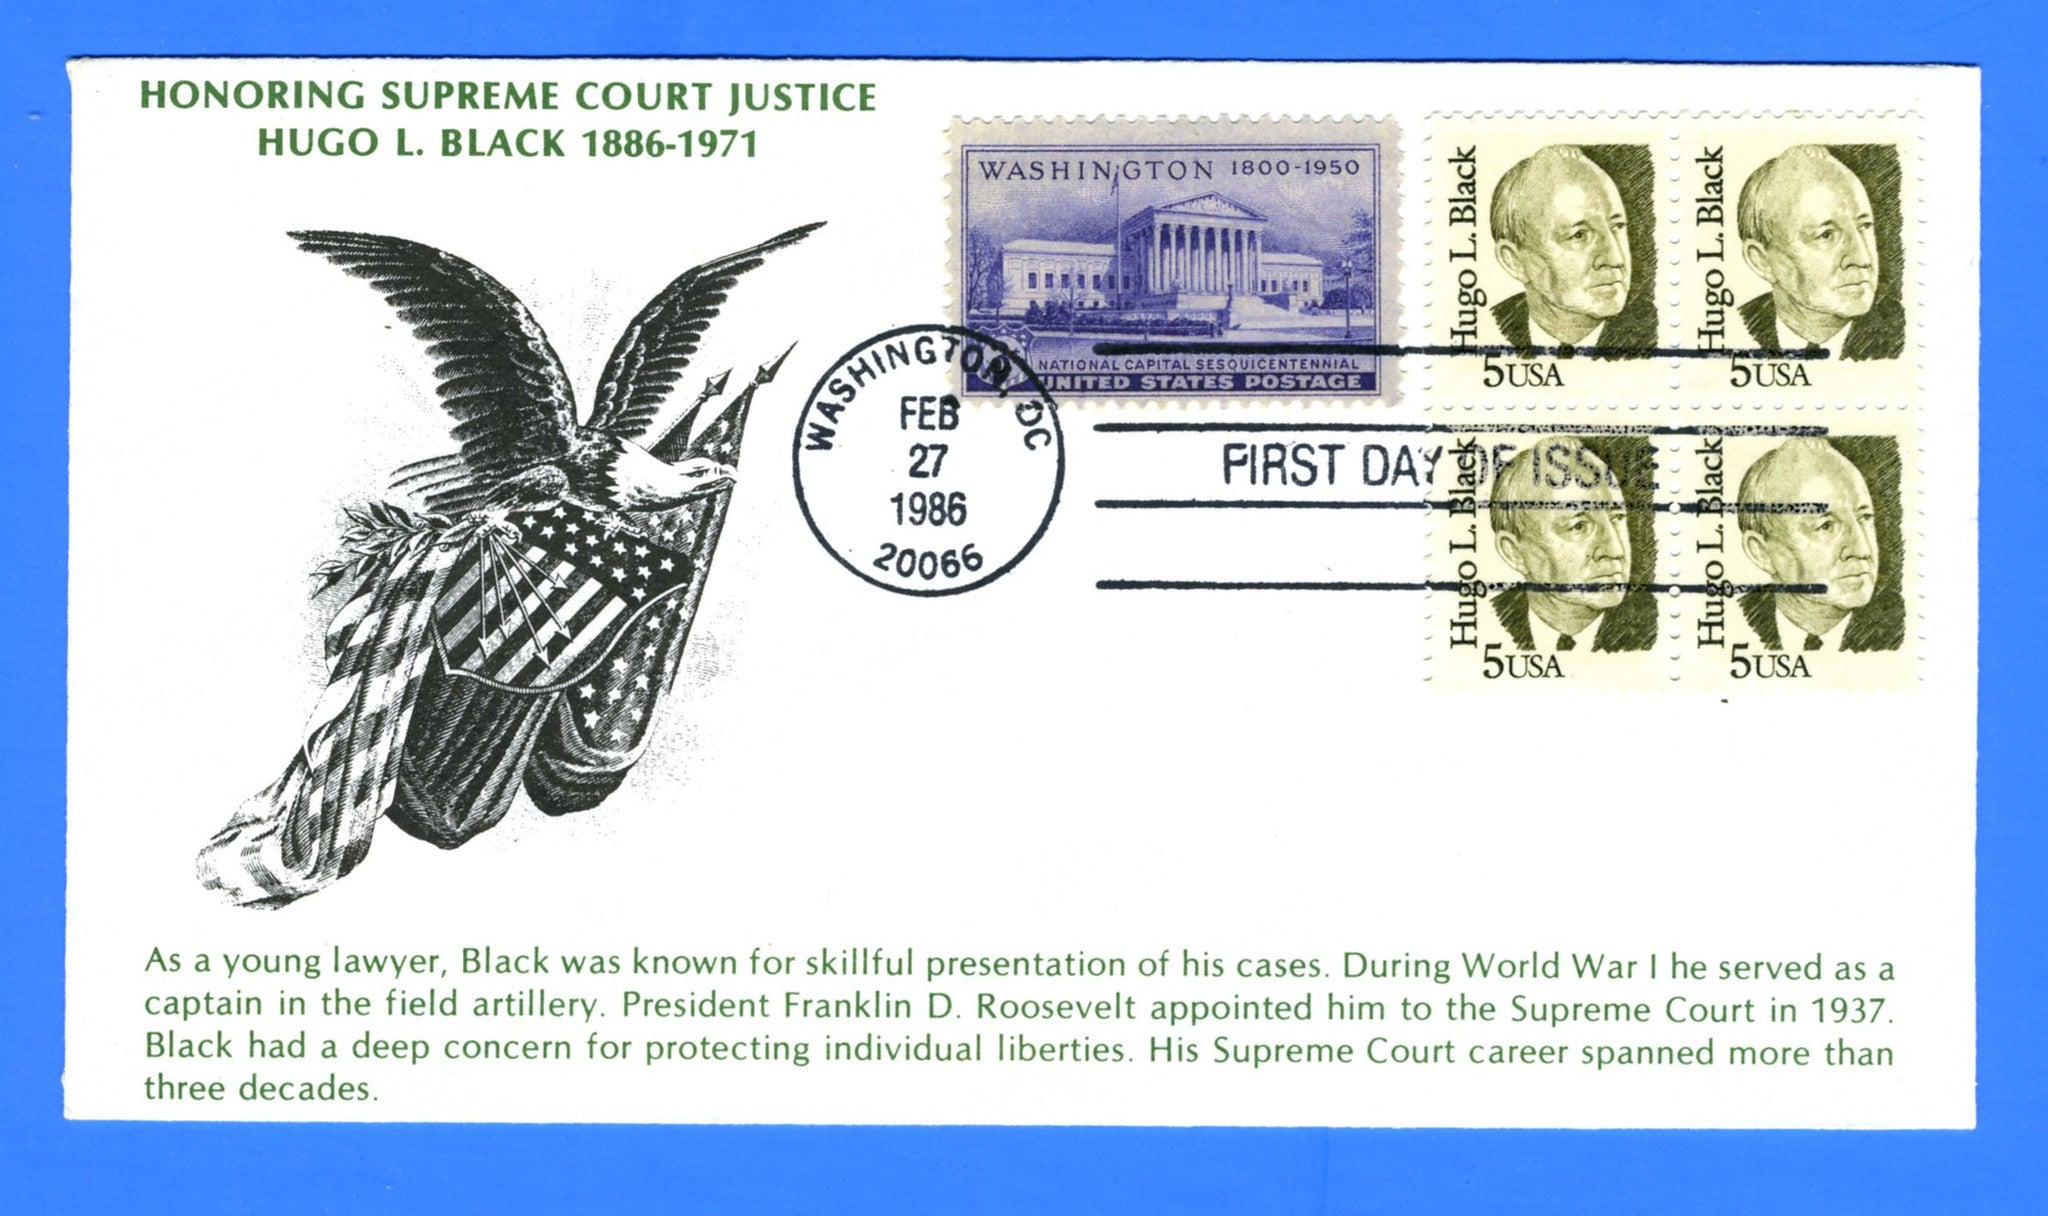 Scott 2172 5c Hugo L. Black First Day Cover by KMC Venture